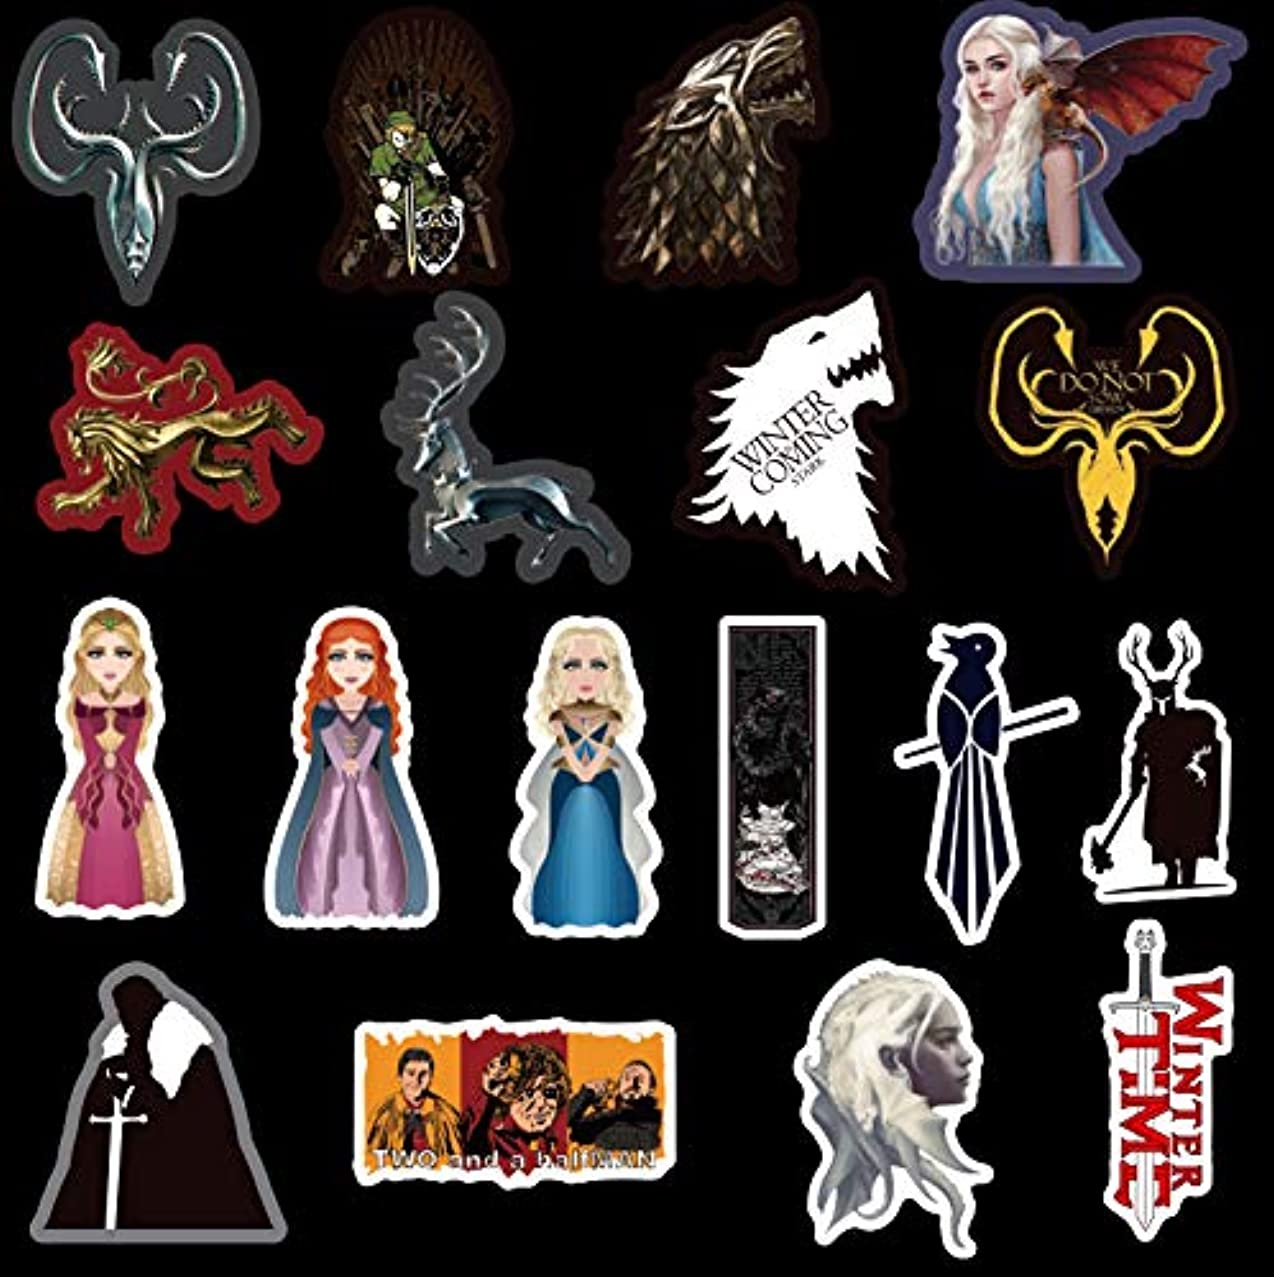 Laptop Stickers[100PCS], Cool Game of Thrones Vinyl Decals for Water Bottle Hydro Flask MacBook iPhone iPad Phone Case Computer Car Bike Bumper Skateboard Luggage, Graffiti Sticker for TV Fans